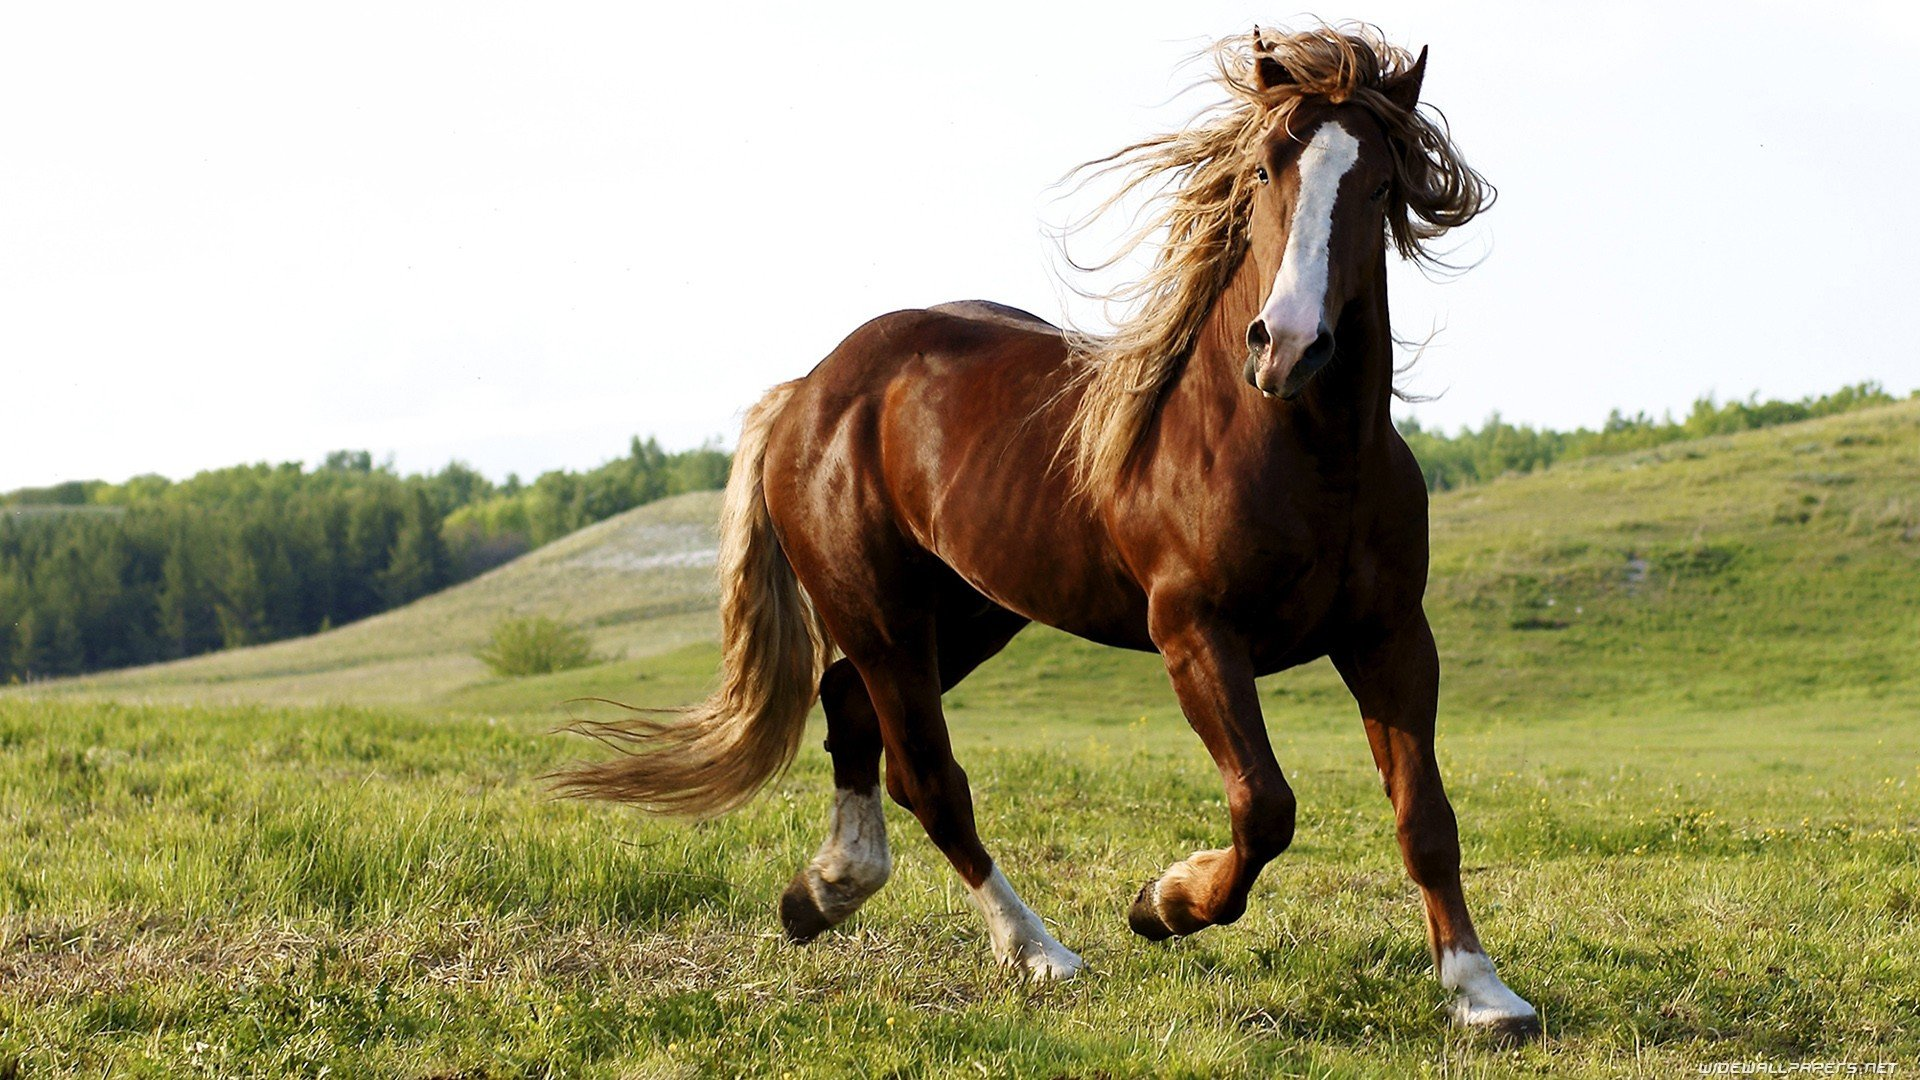 Awesome Horse free background ID:24295 for hd 1920x1080 computer